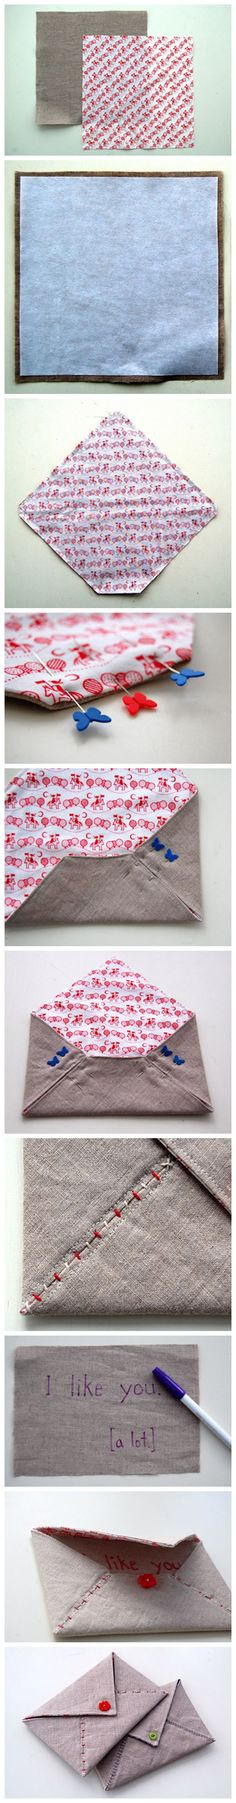 Stitched envelope